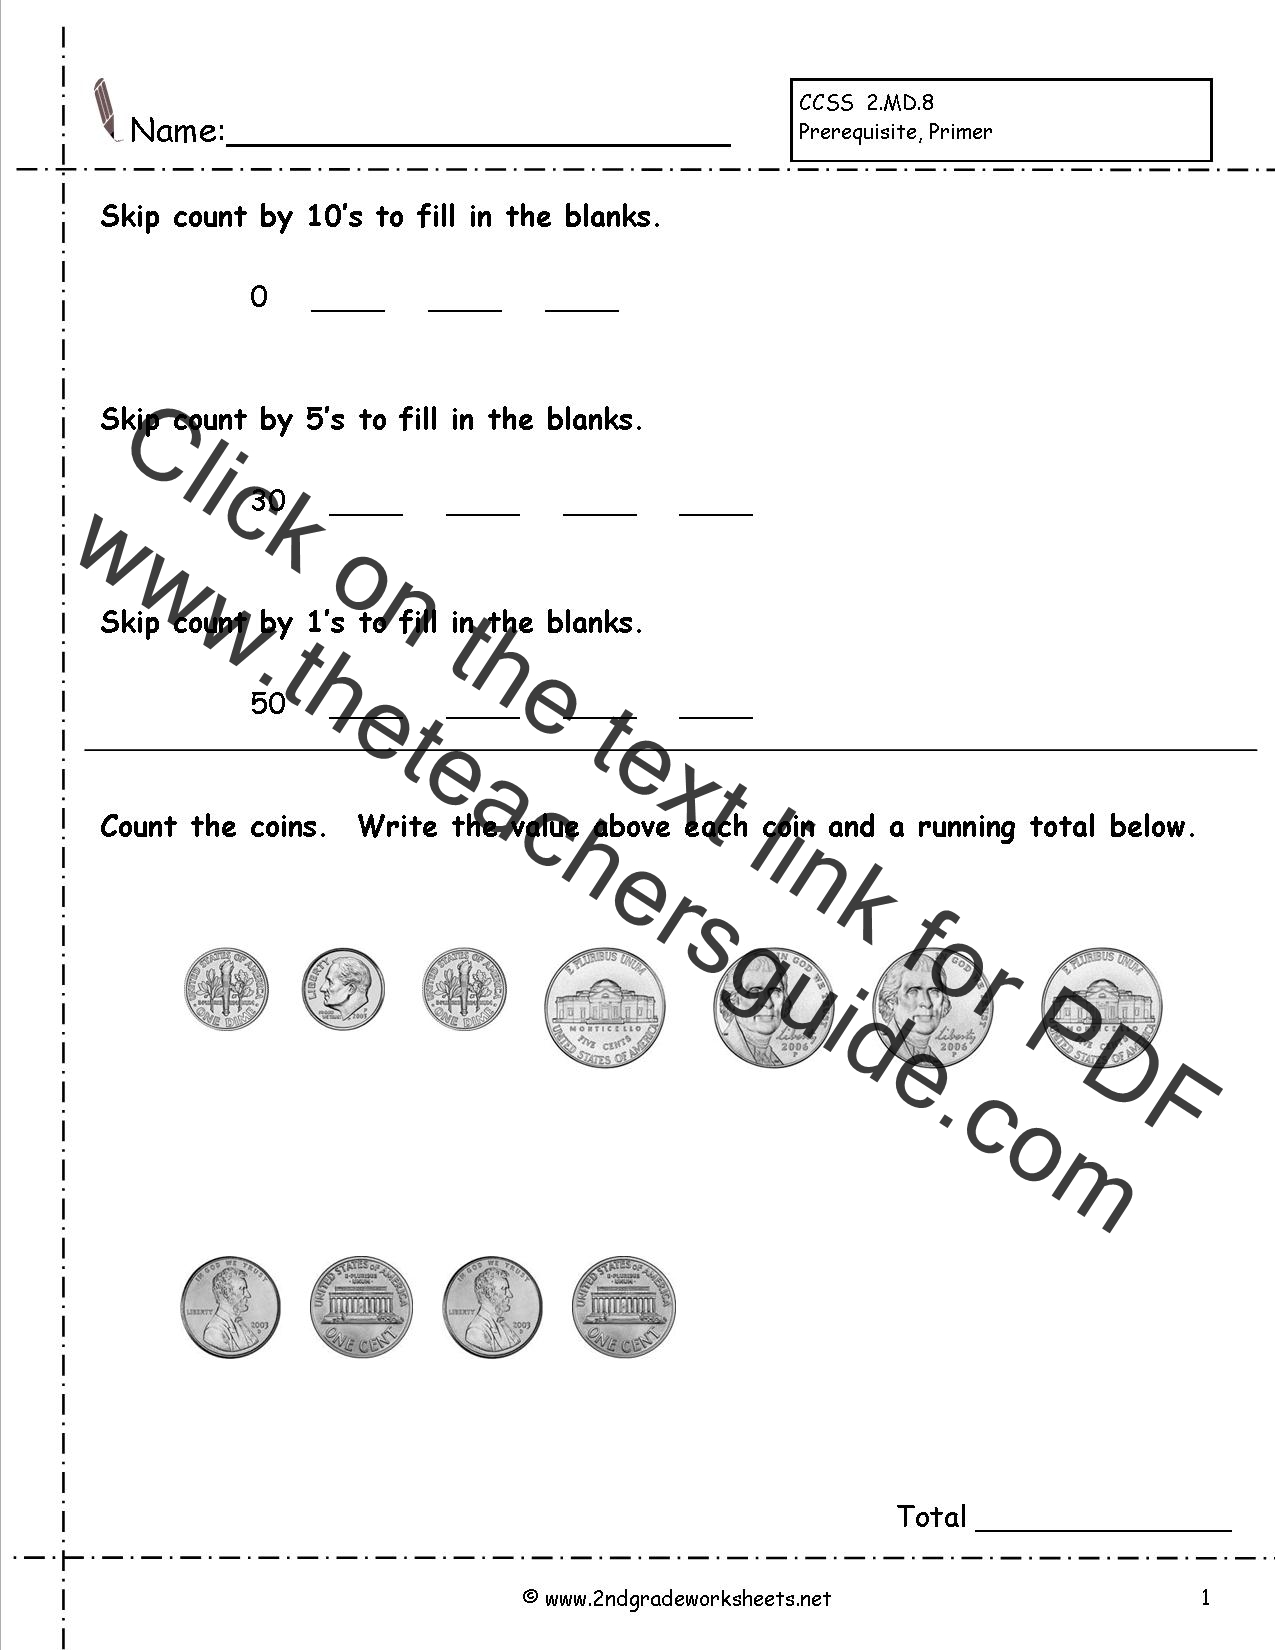 Printables Value Of Coins Worksheet Beyoncenetworth